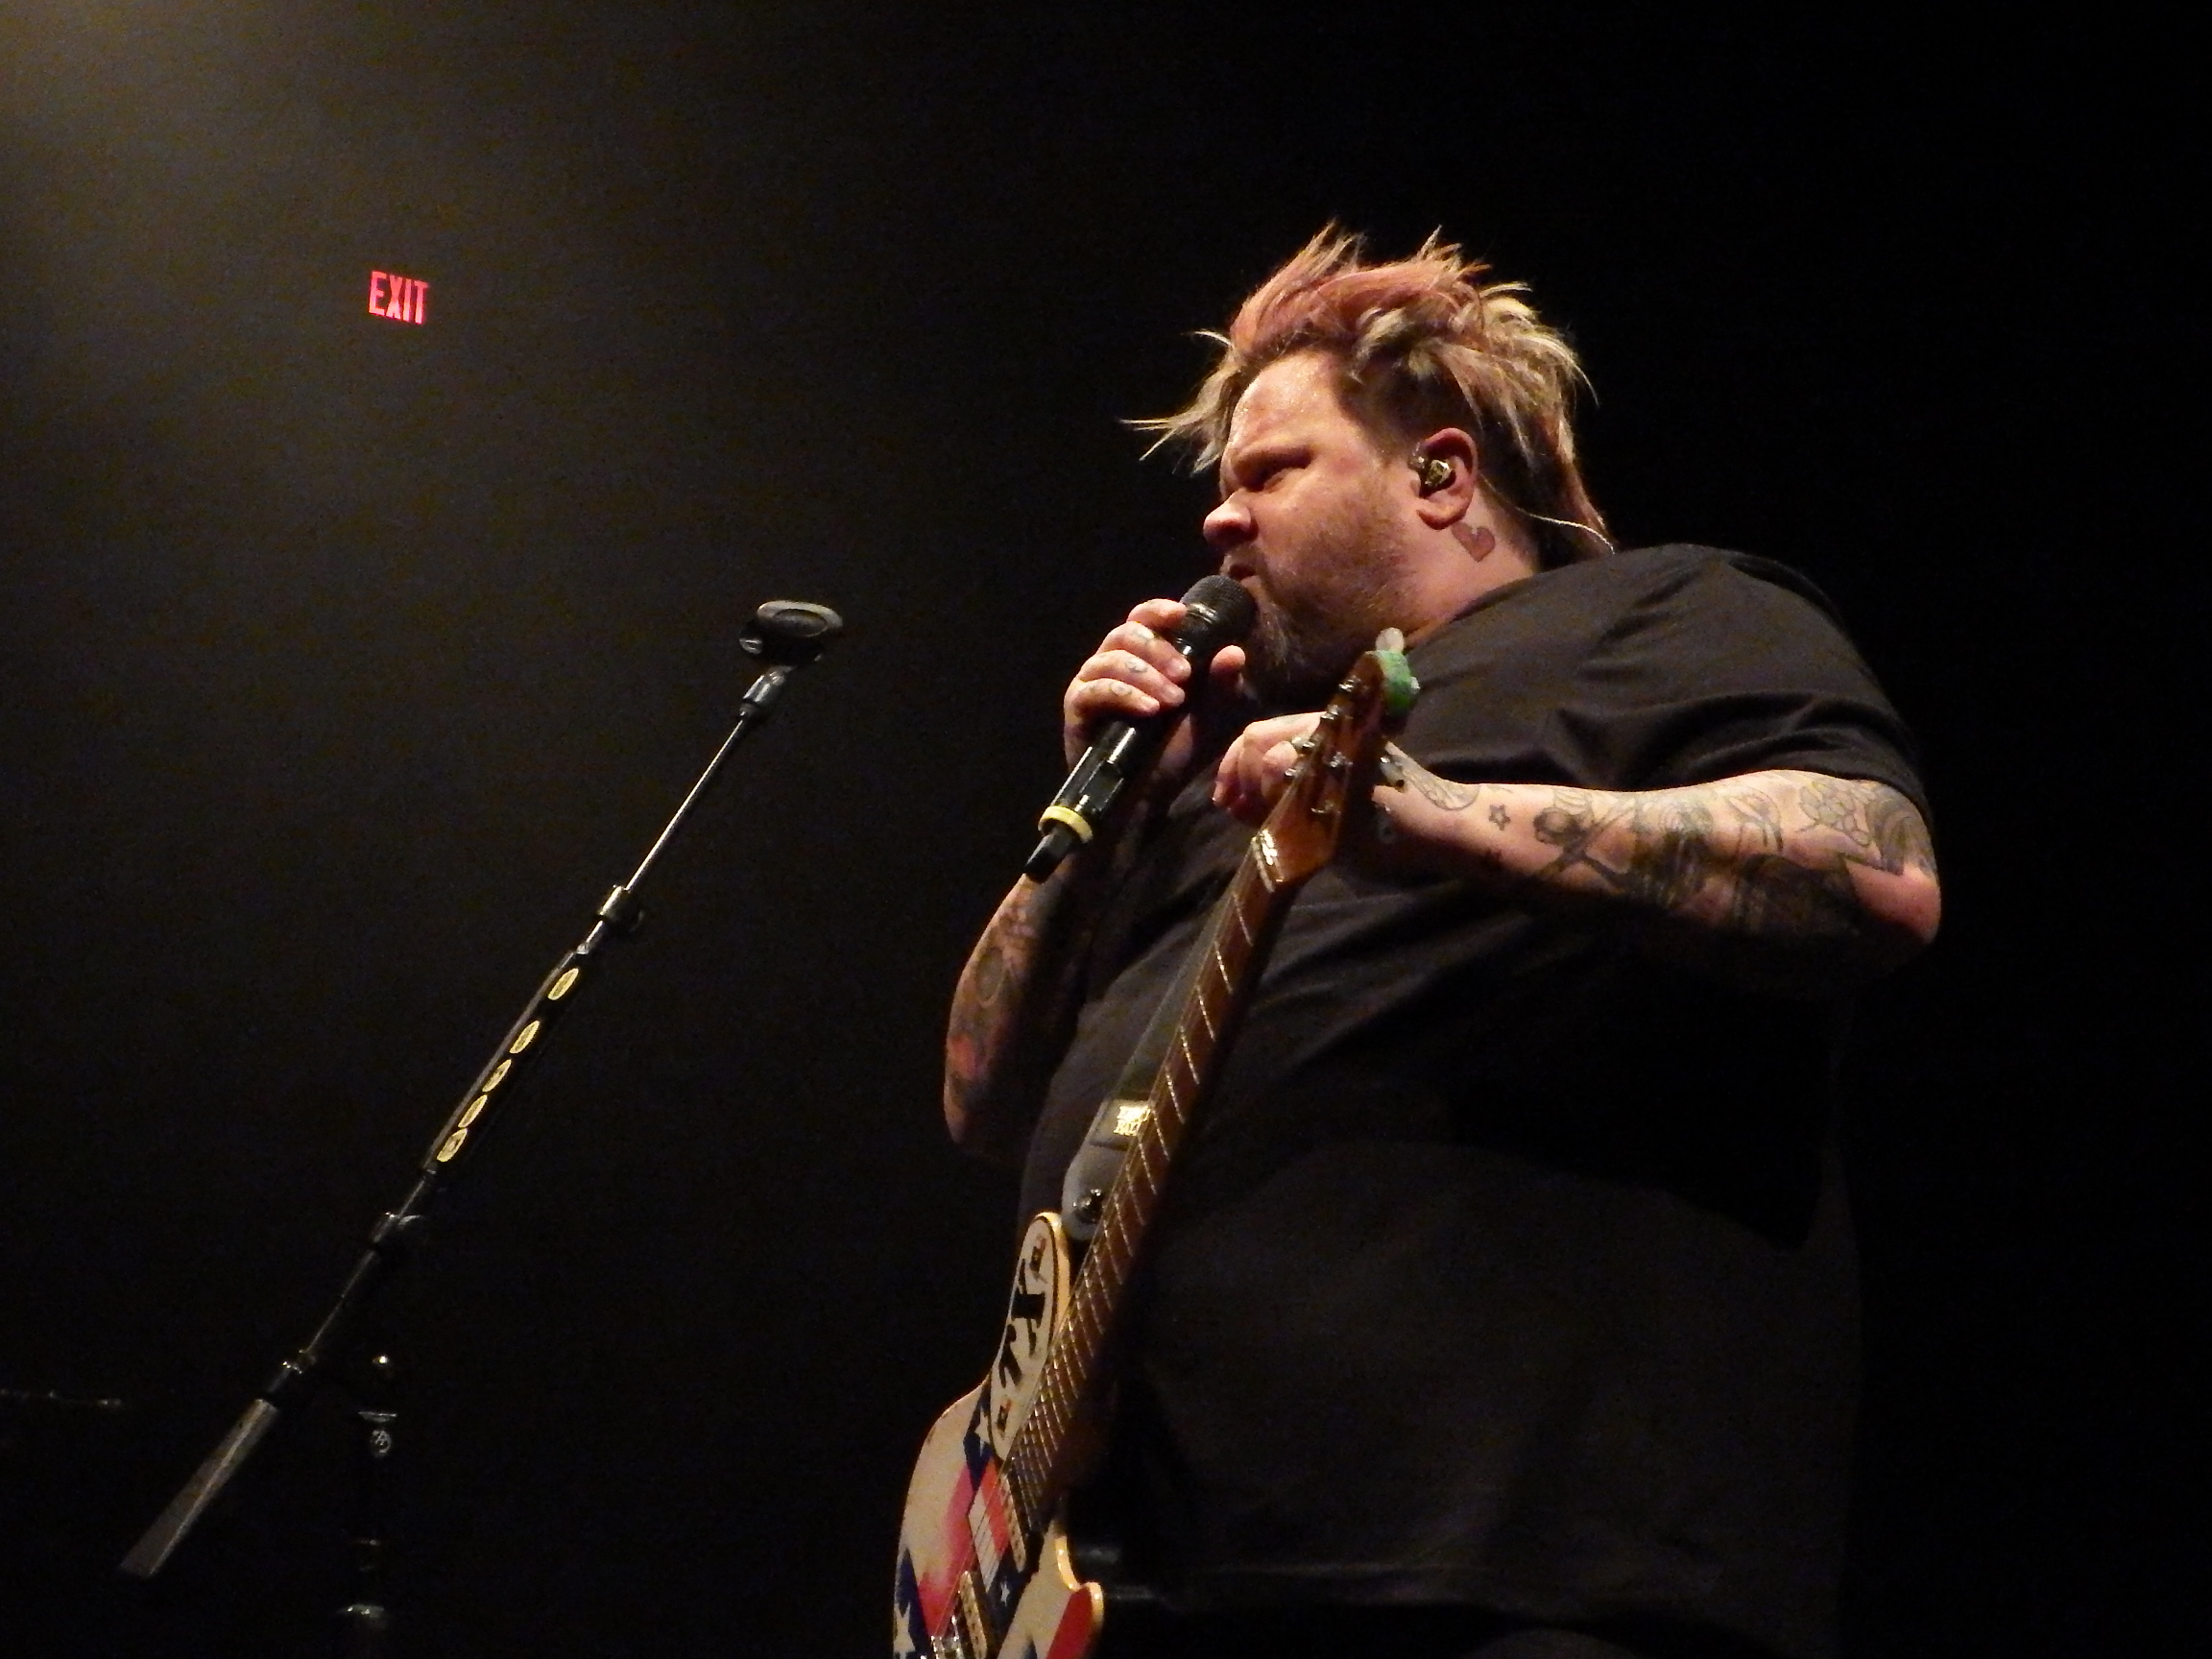 Jaret Reddick of Bowling for Soup